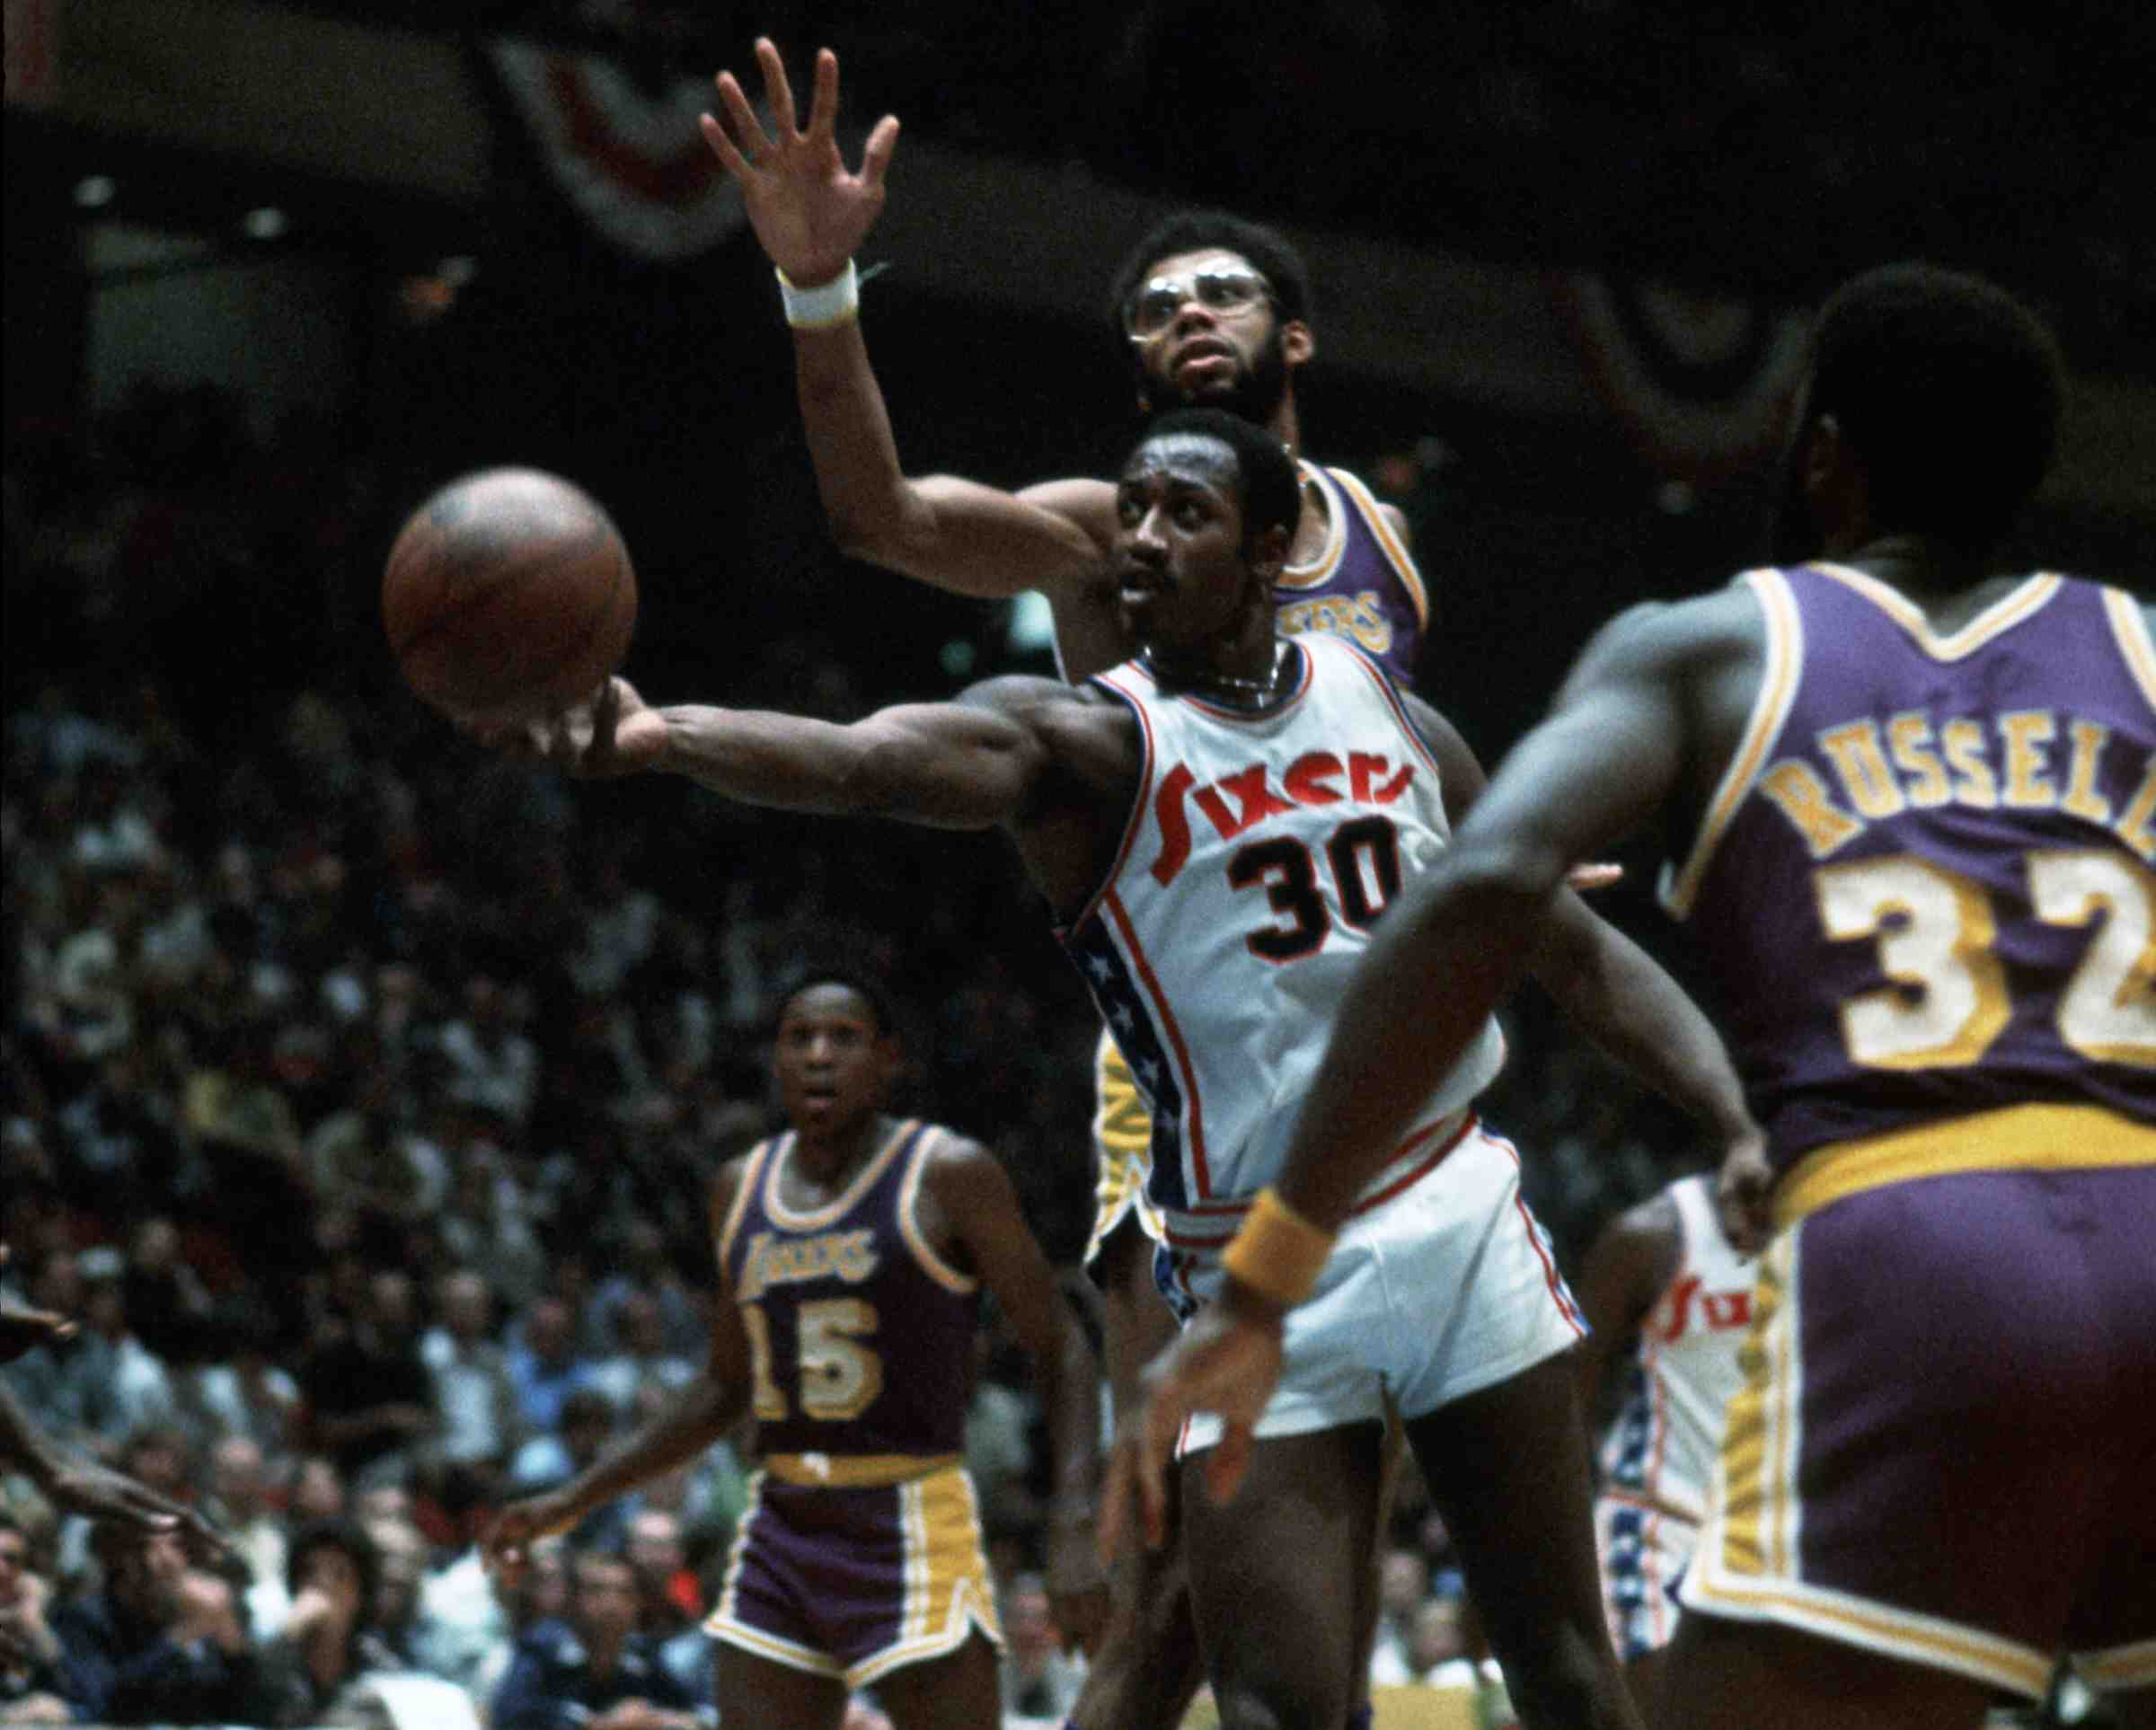 SIXERS GREAT GEORGE MCGINNIS 30 YEAR HALL OF FAME WAIT IS OVER